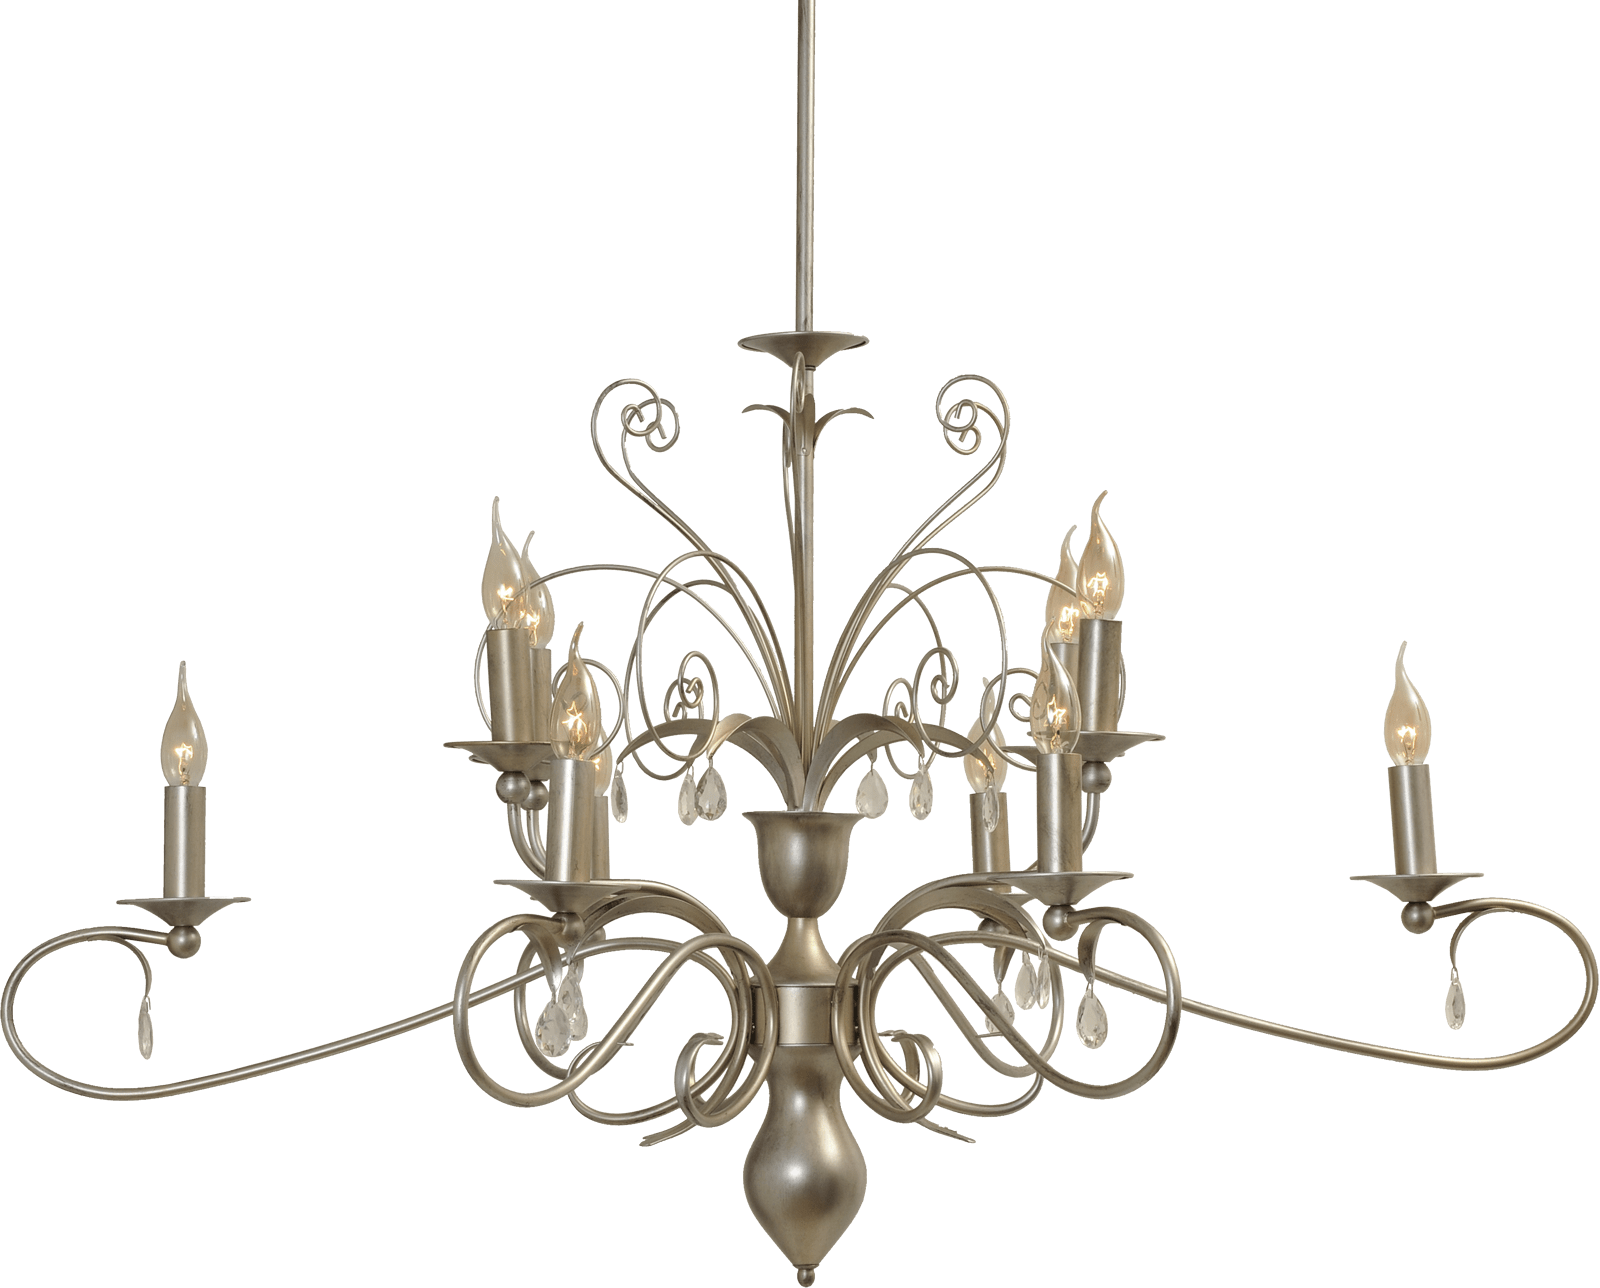 Moskow HL MOSKOW AGED SILVER 6+4LTS OVAAL 115CM68CM